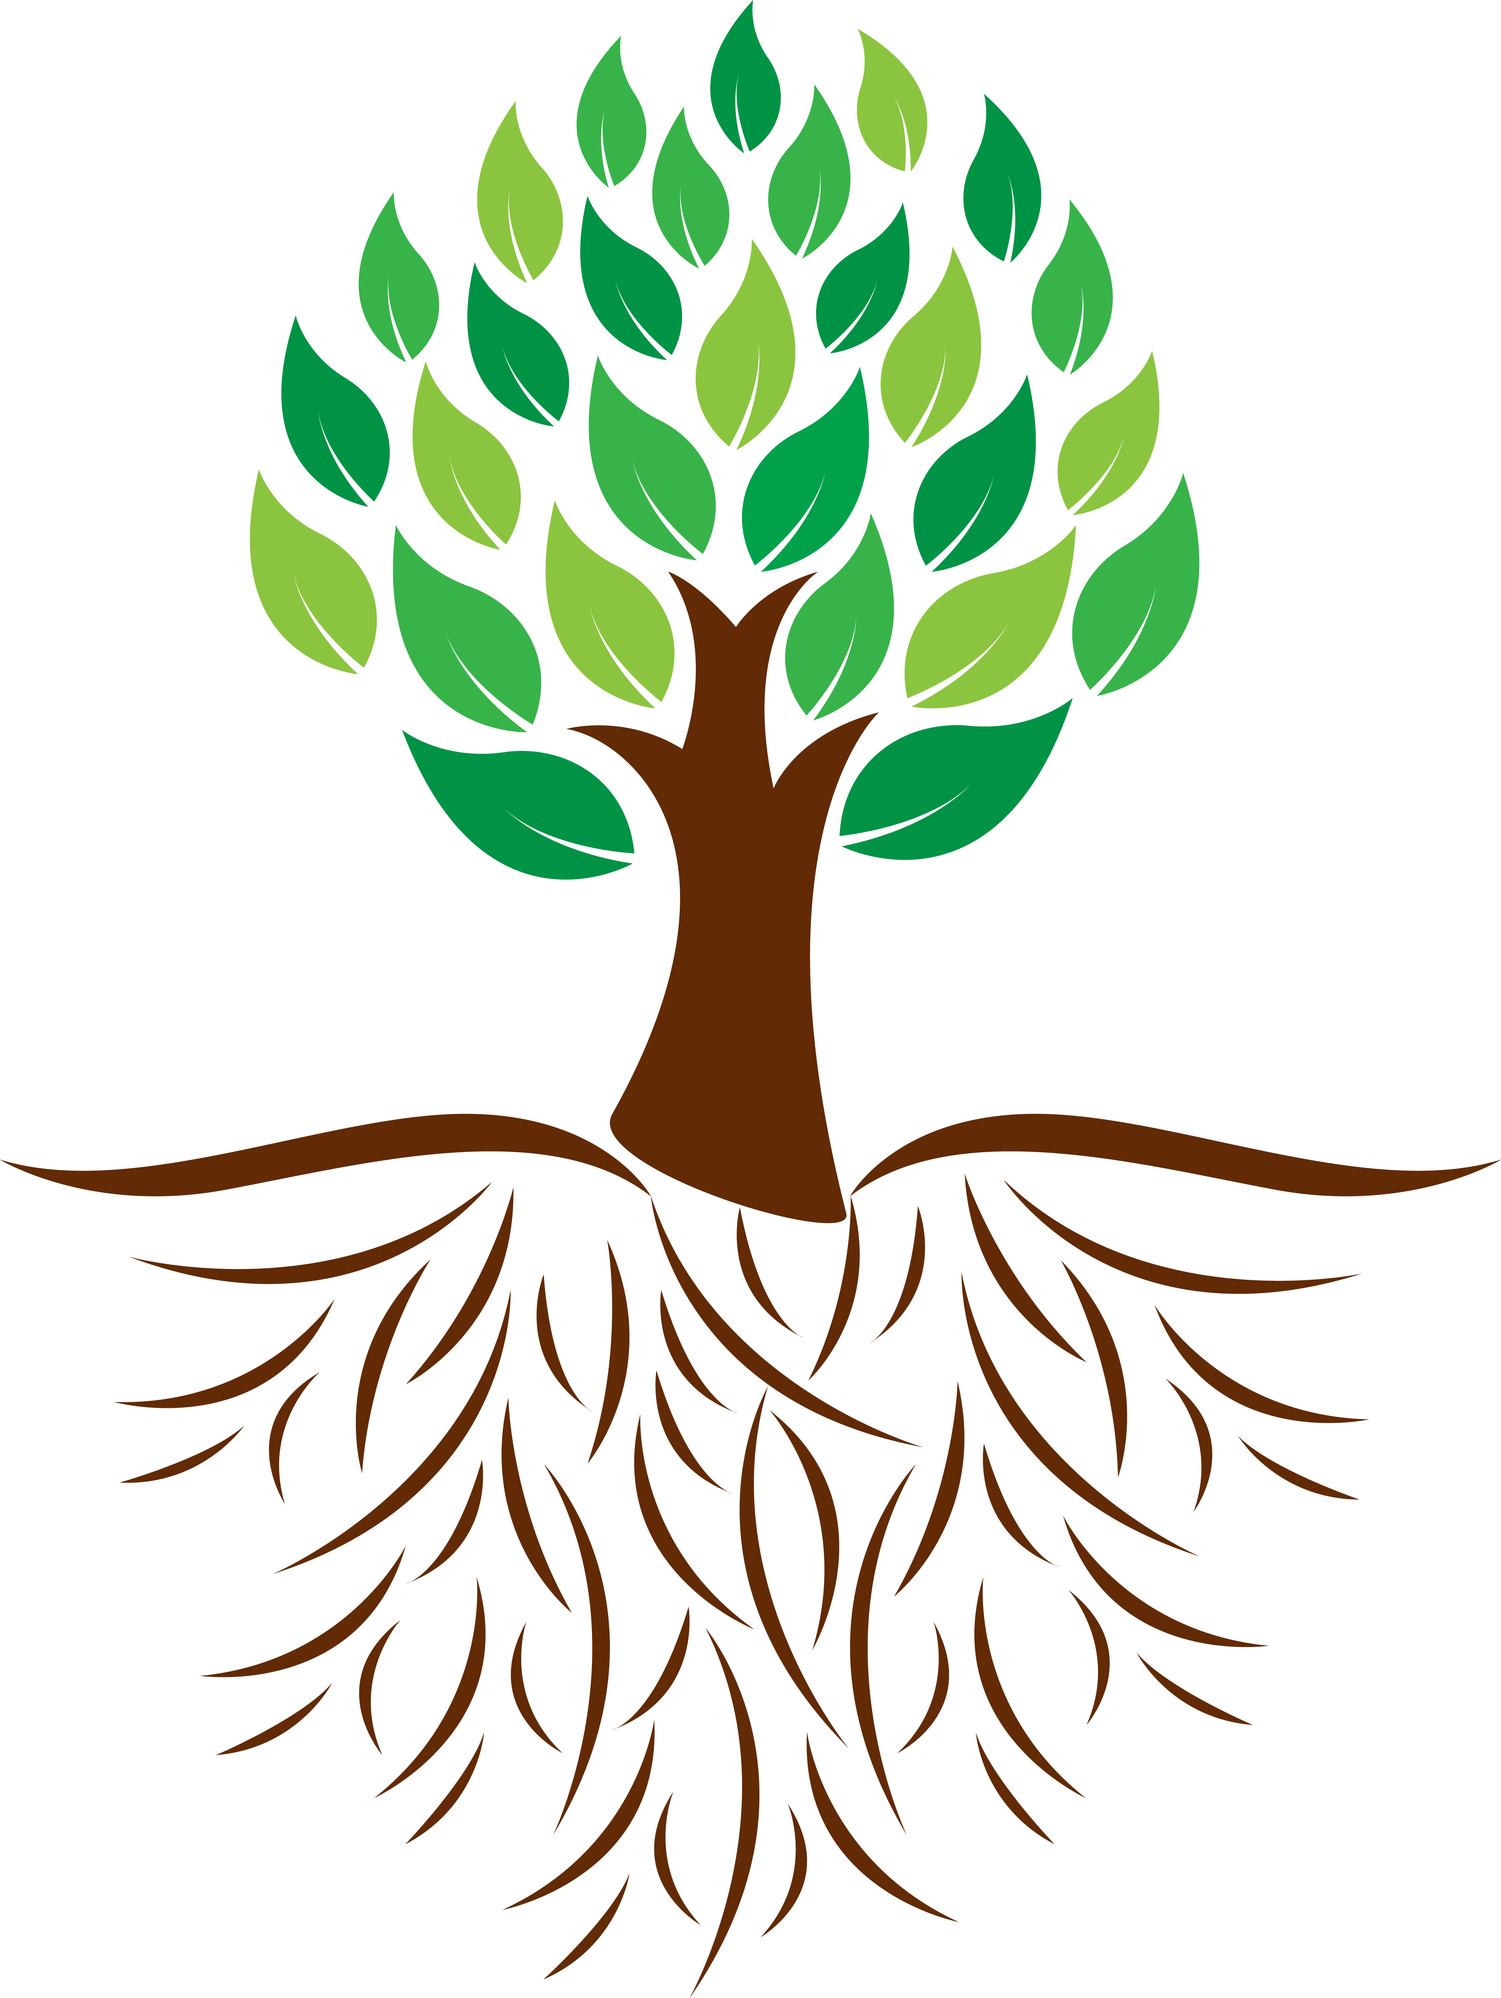 Clipart trees with roots banner freeuse stock Free Tree Roots Cliparts, Download Free Clip Art, Free Clip Art on ... banner freeuse stock